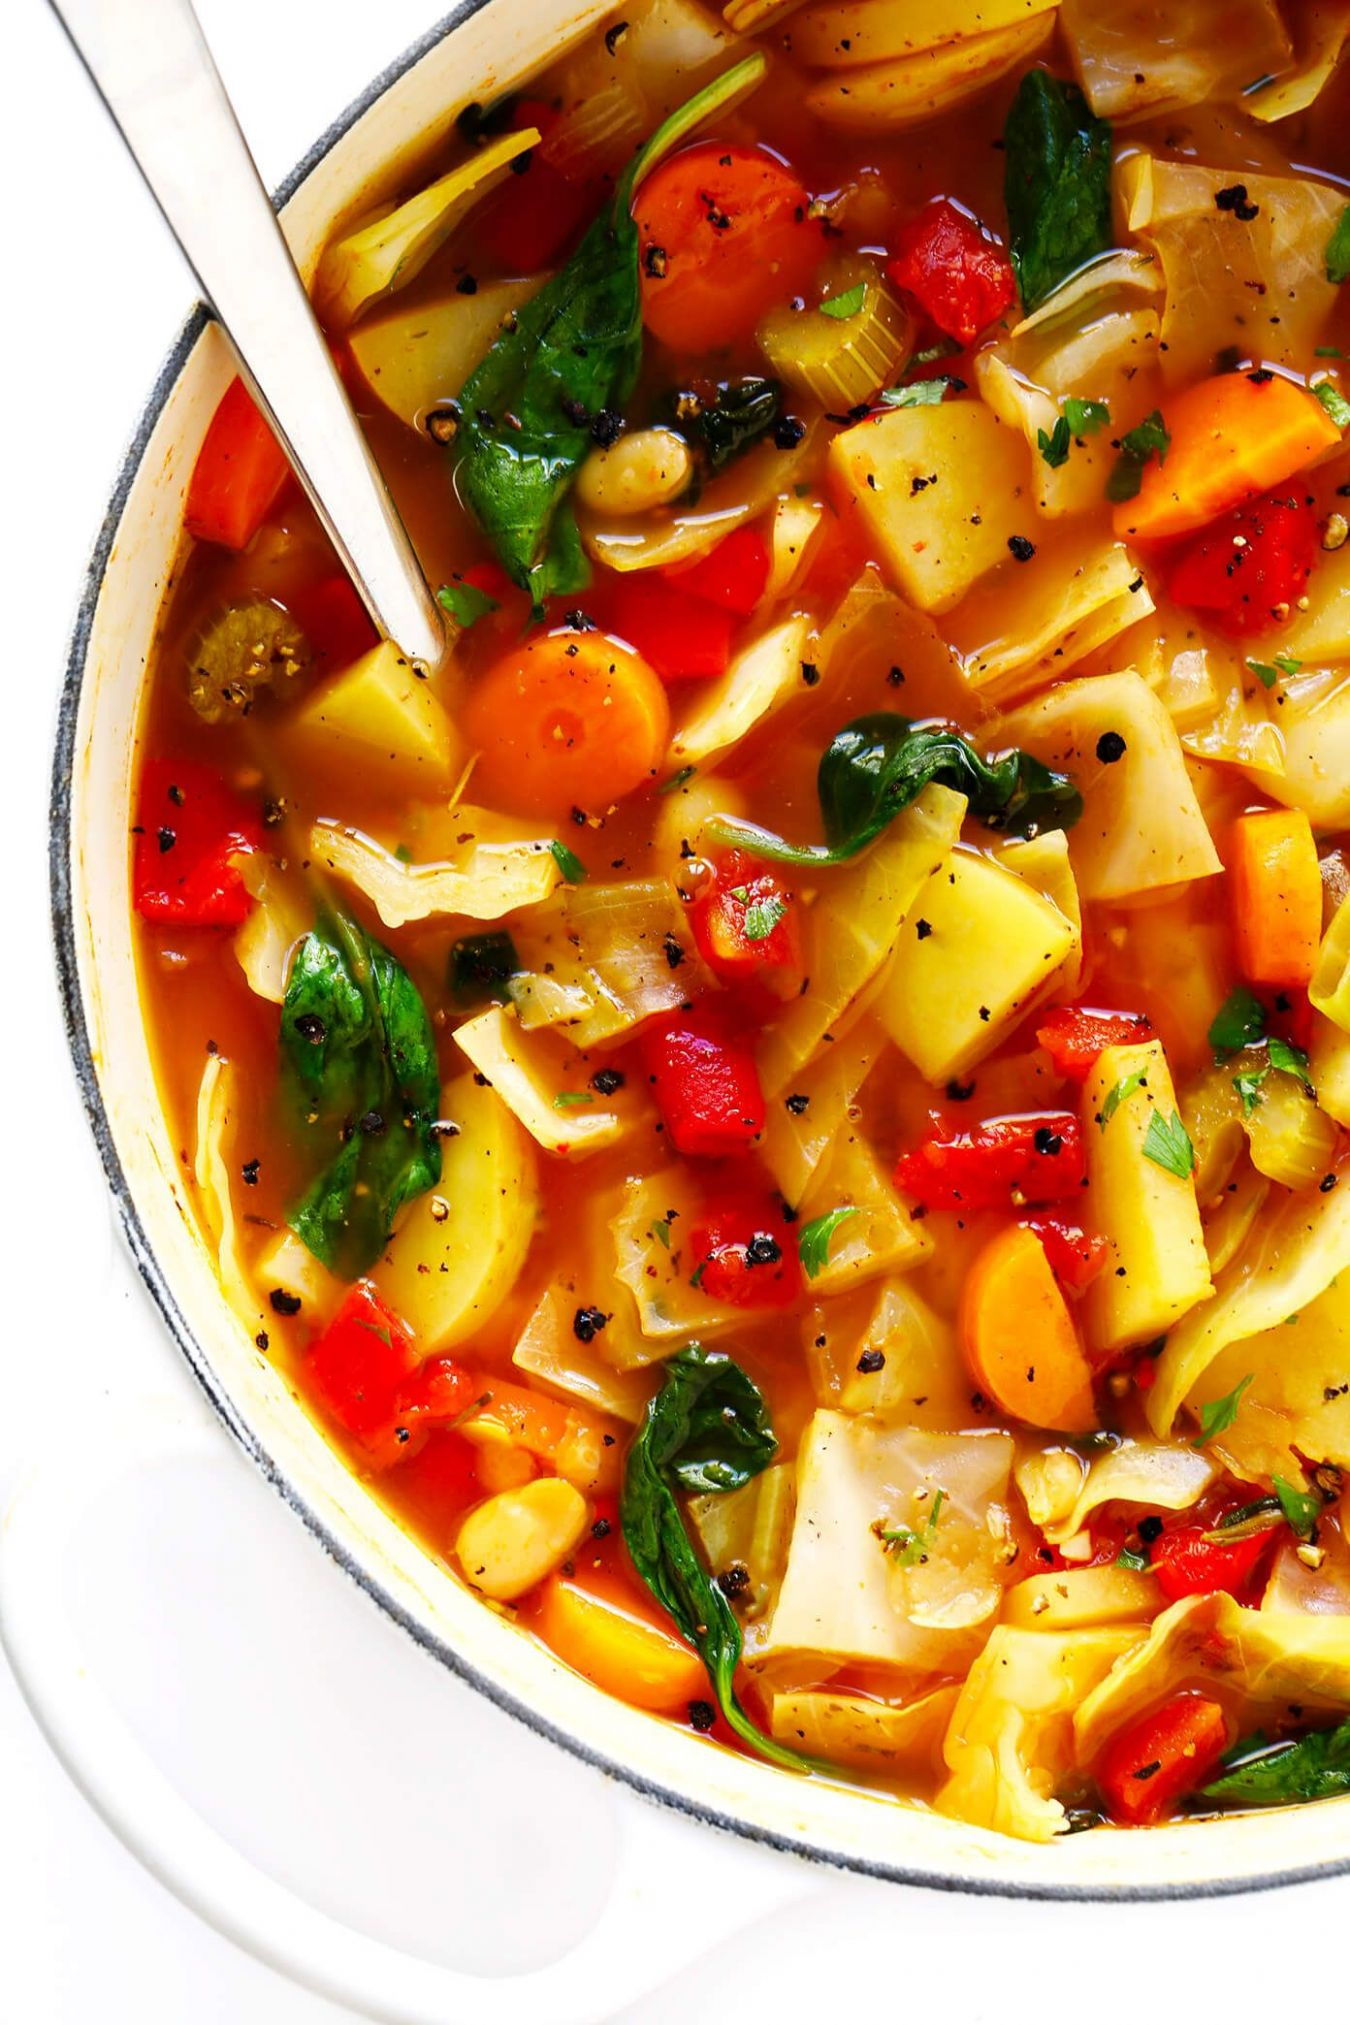 9 Best Vegetarian Soup Recipes - Easy, Healthy Vegetarian Soups